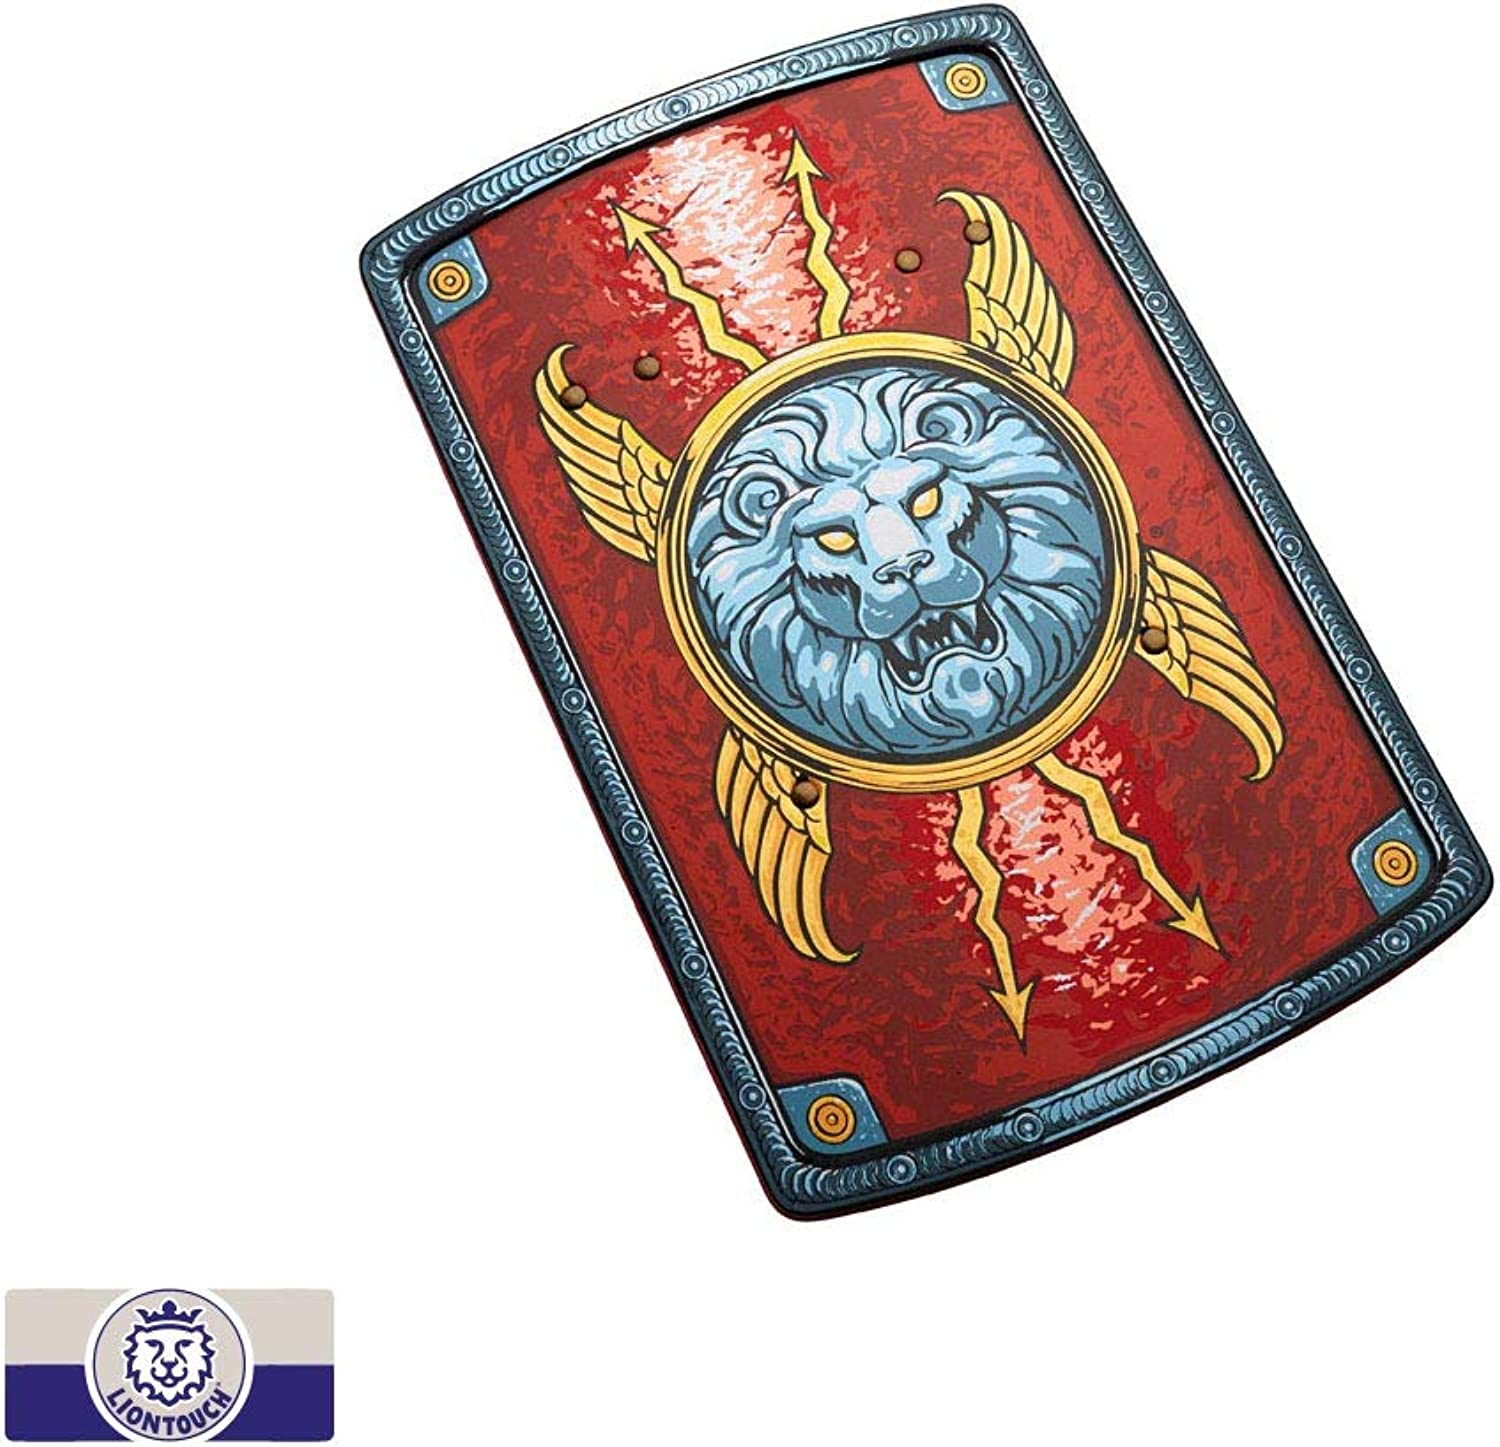 Liontouch Roman Shield by Liontouch